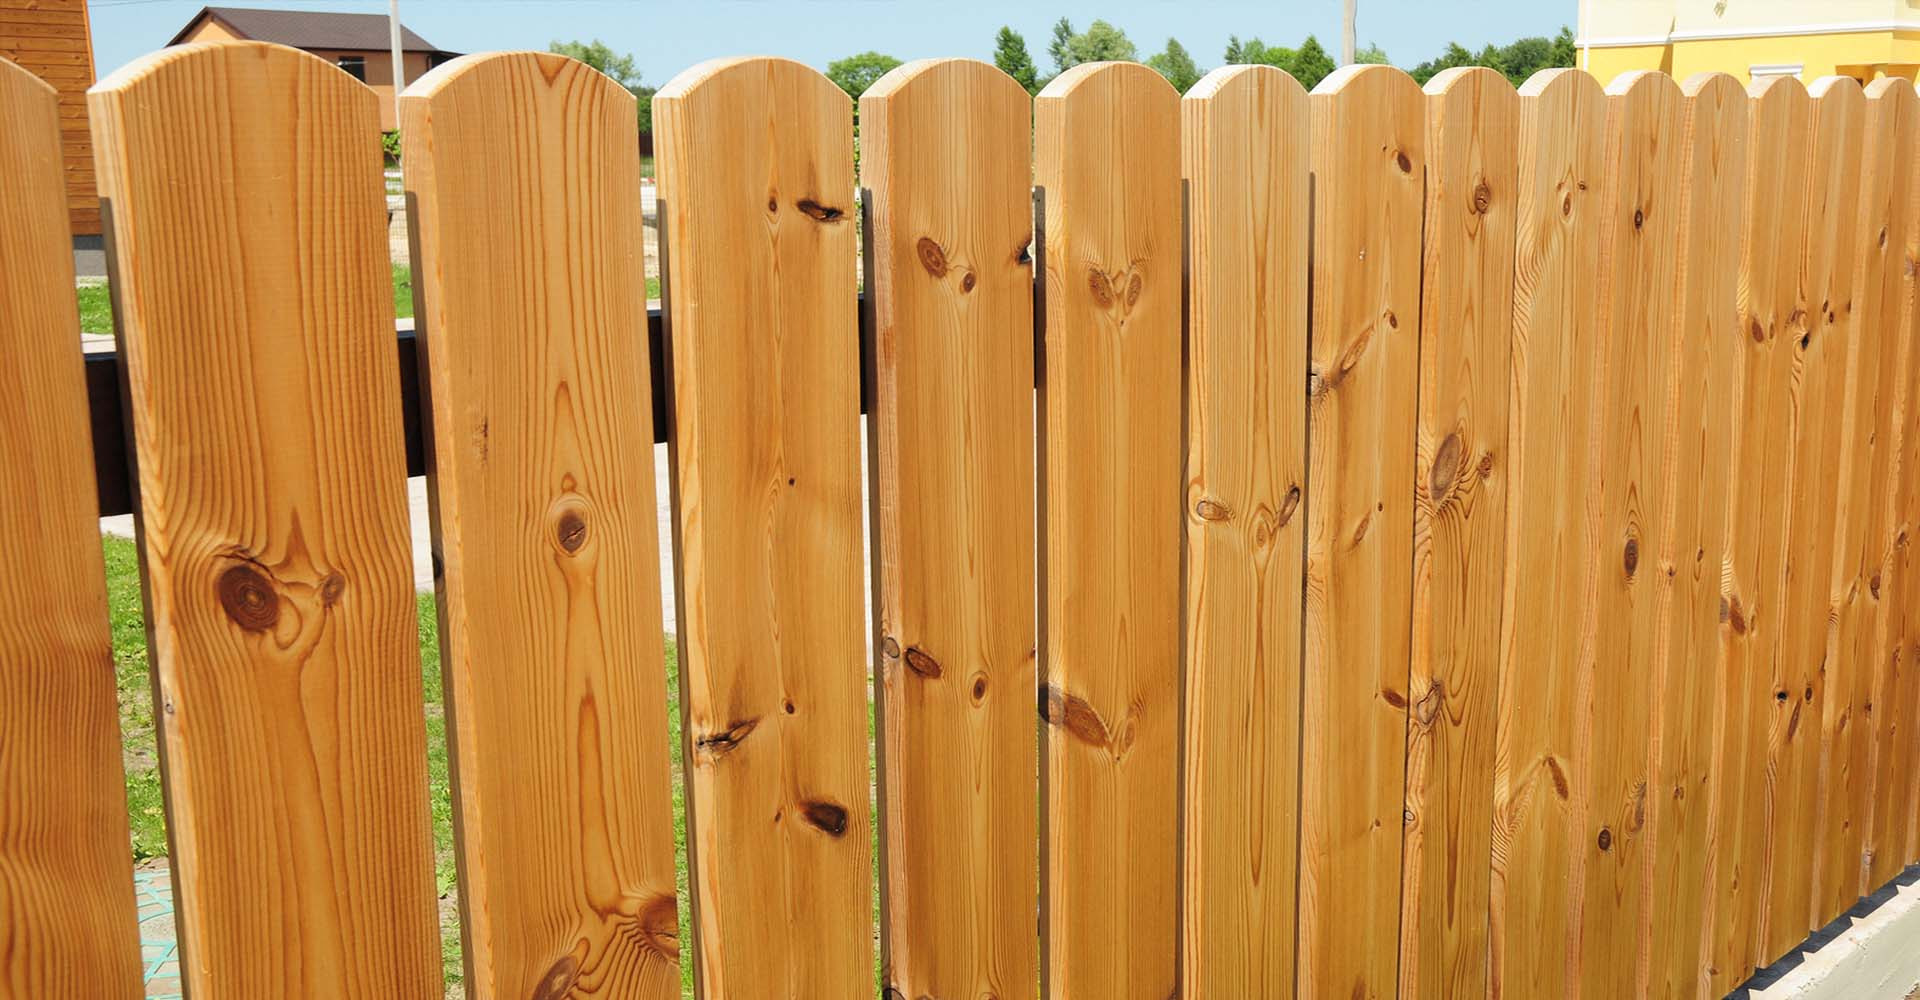 Thank you for your interest in Rutt Fence